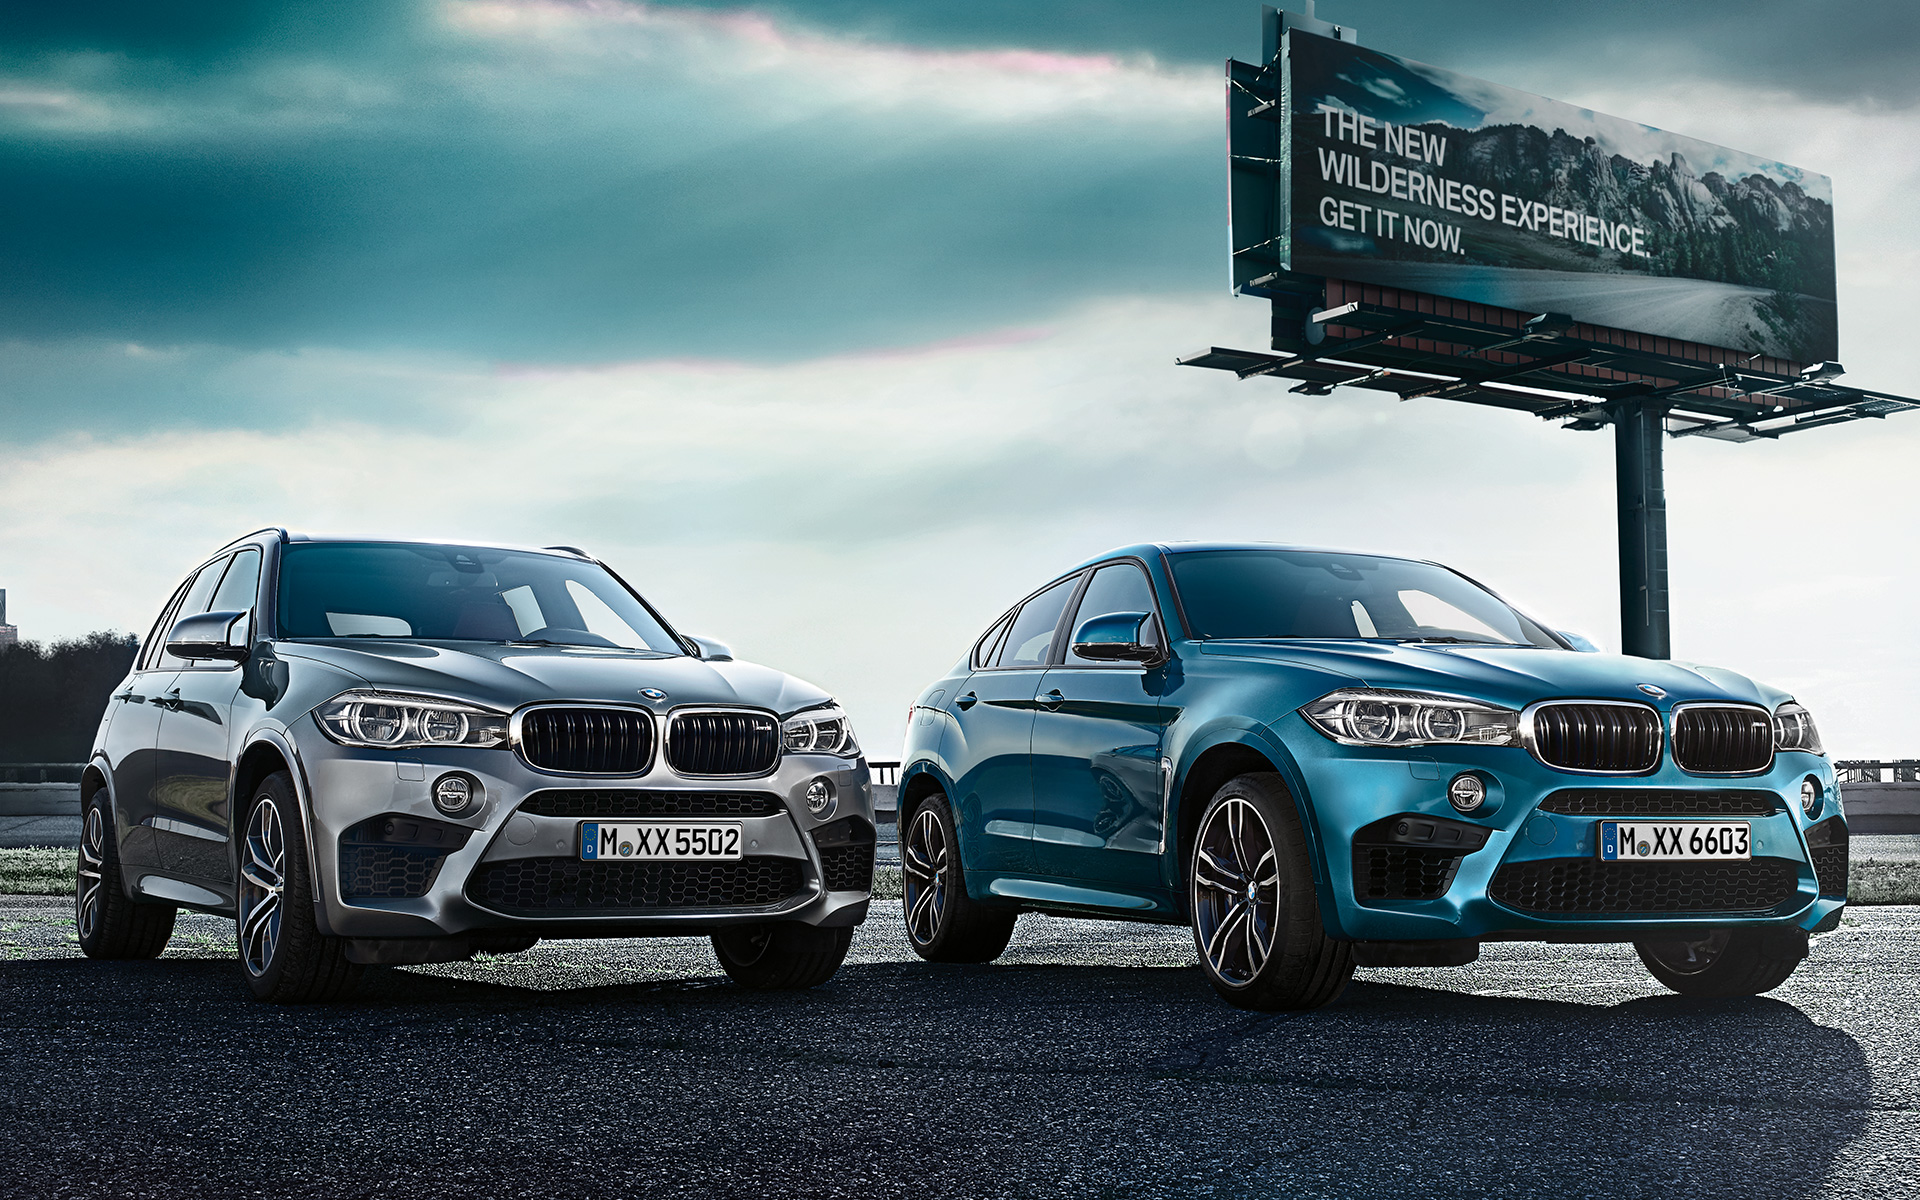 BMW X5 M and X6 M - Front View